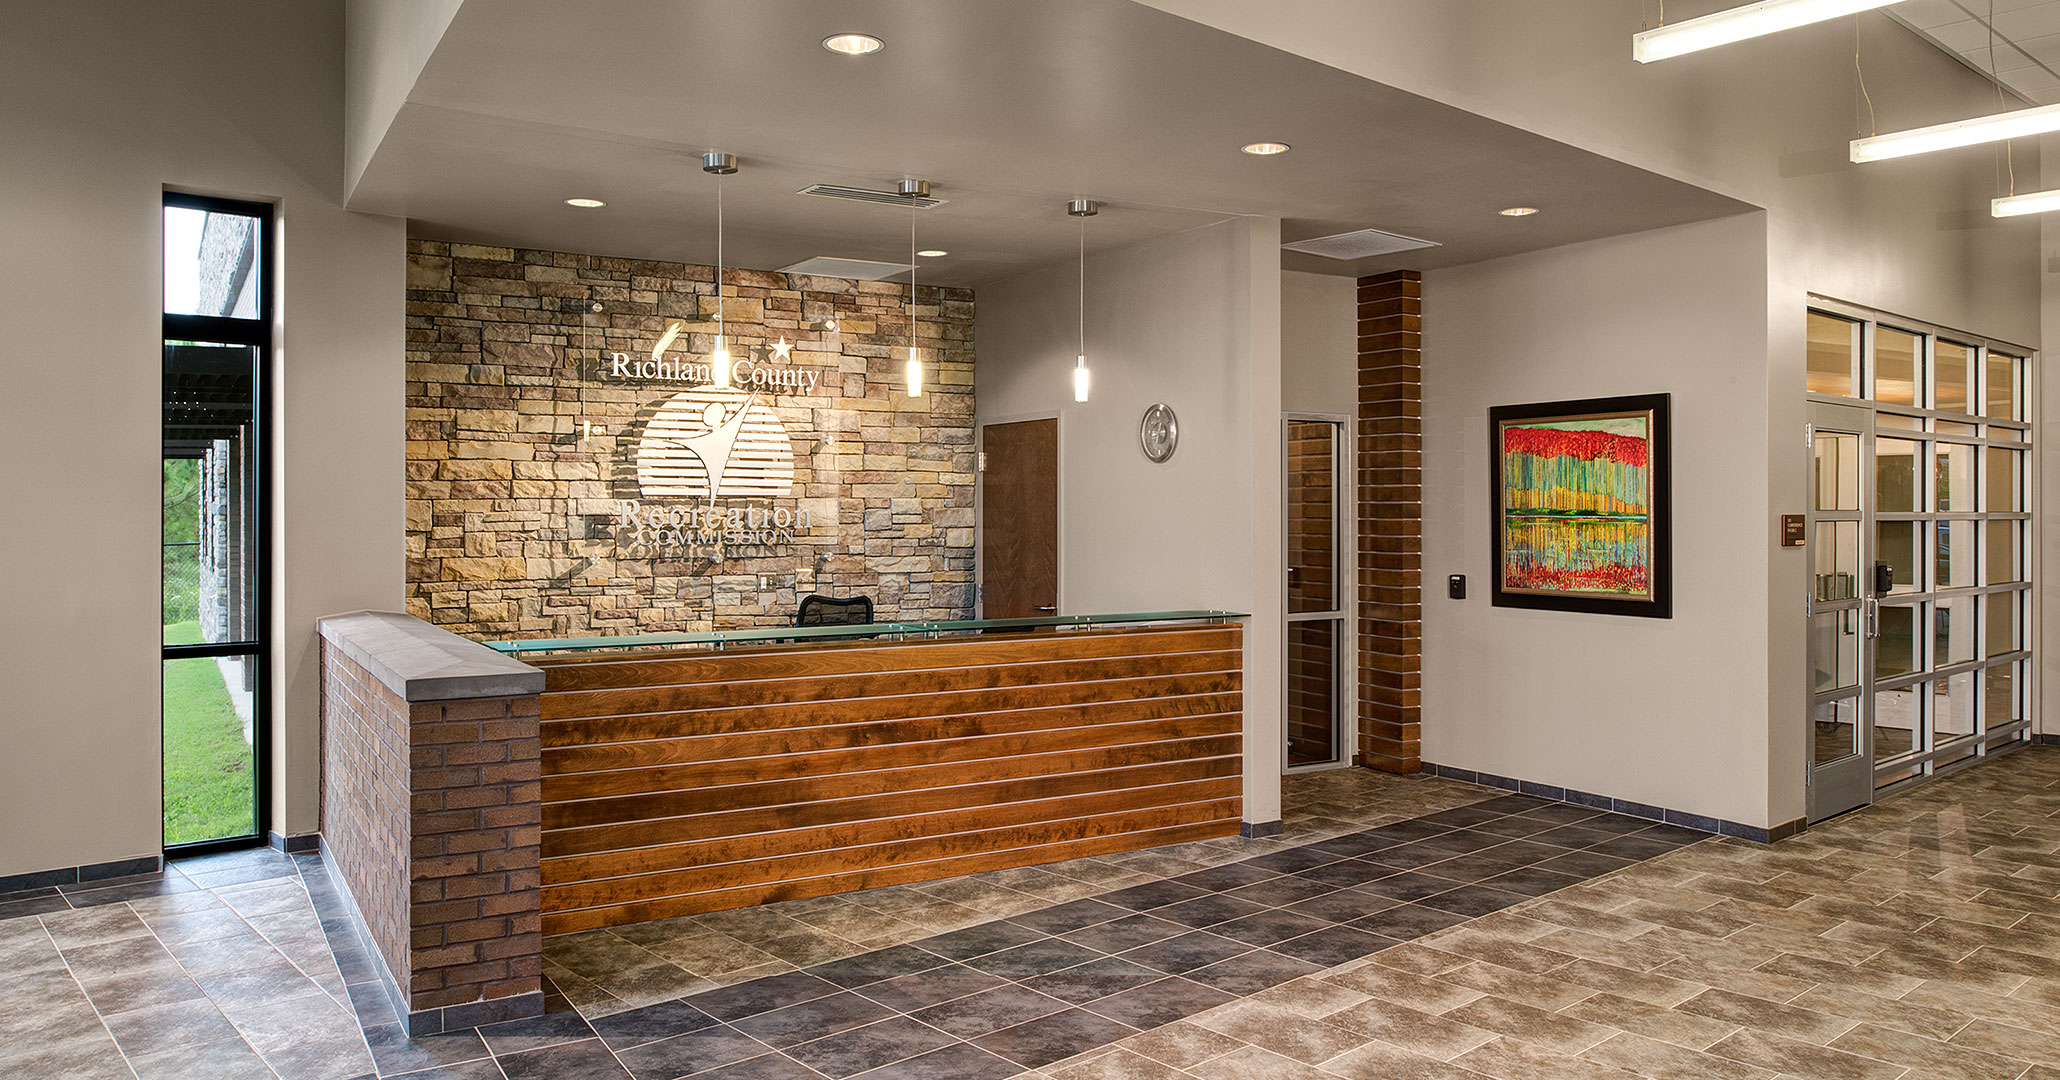 Boudreaux architects worked with the Richland County Recreation Commission to design the interiors at the RCRC Headquarters.